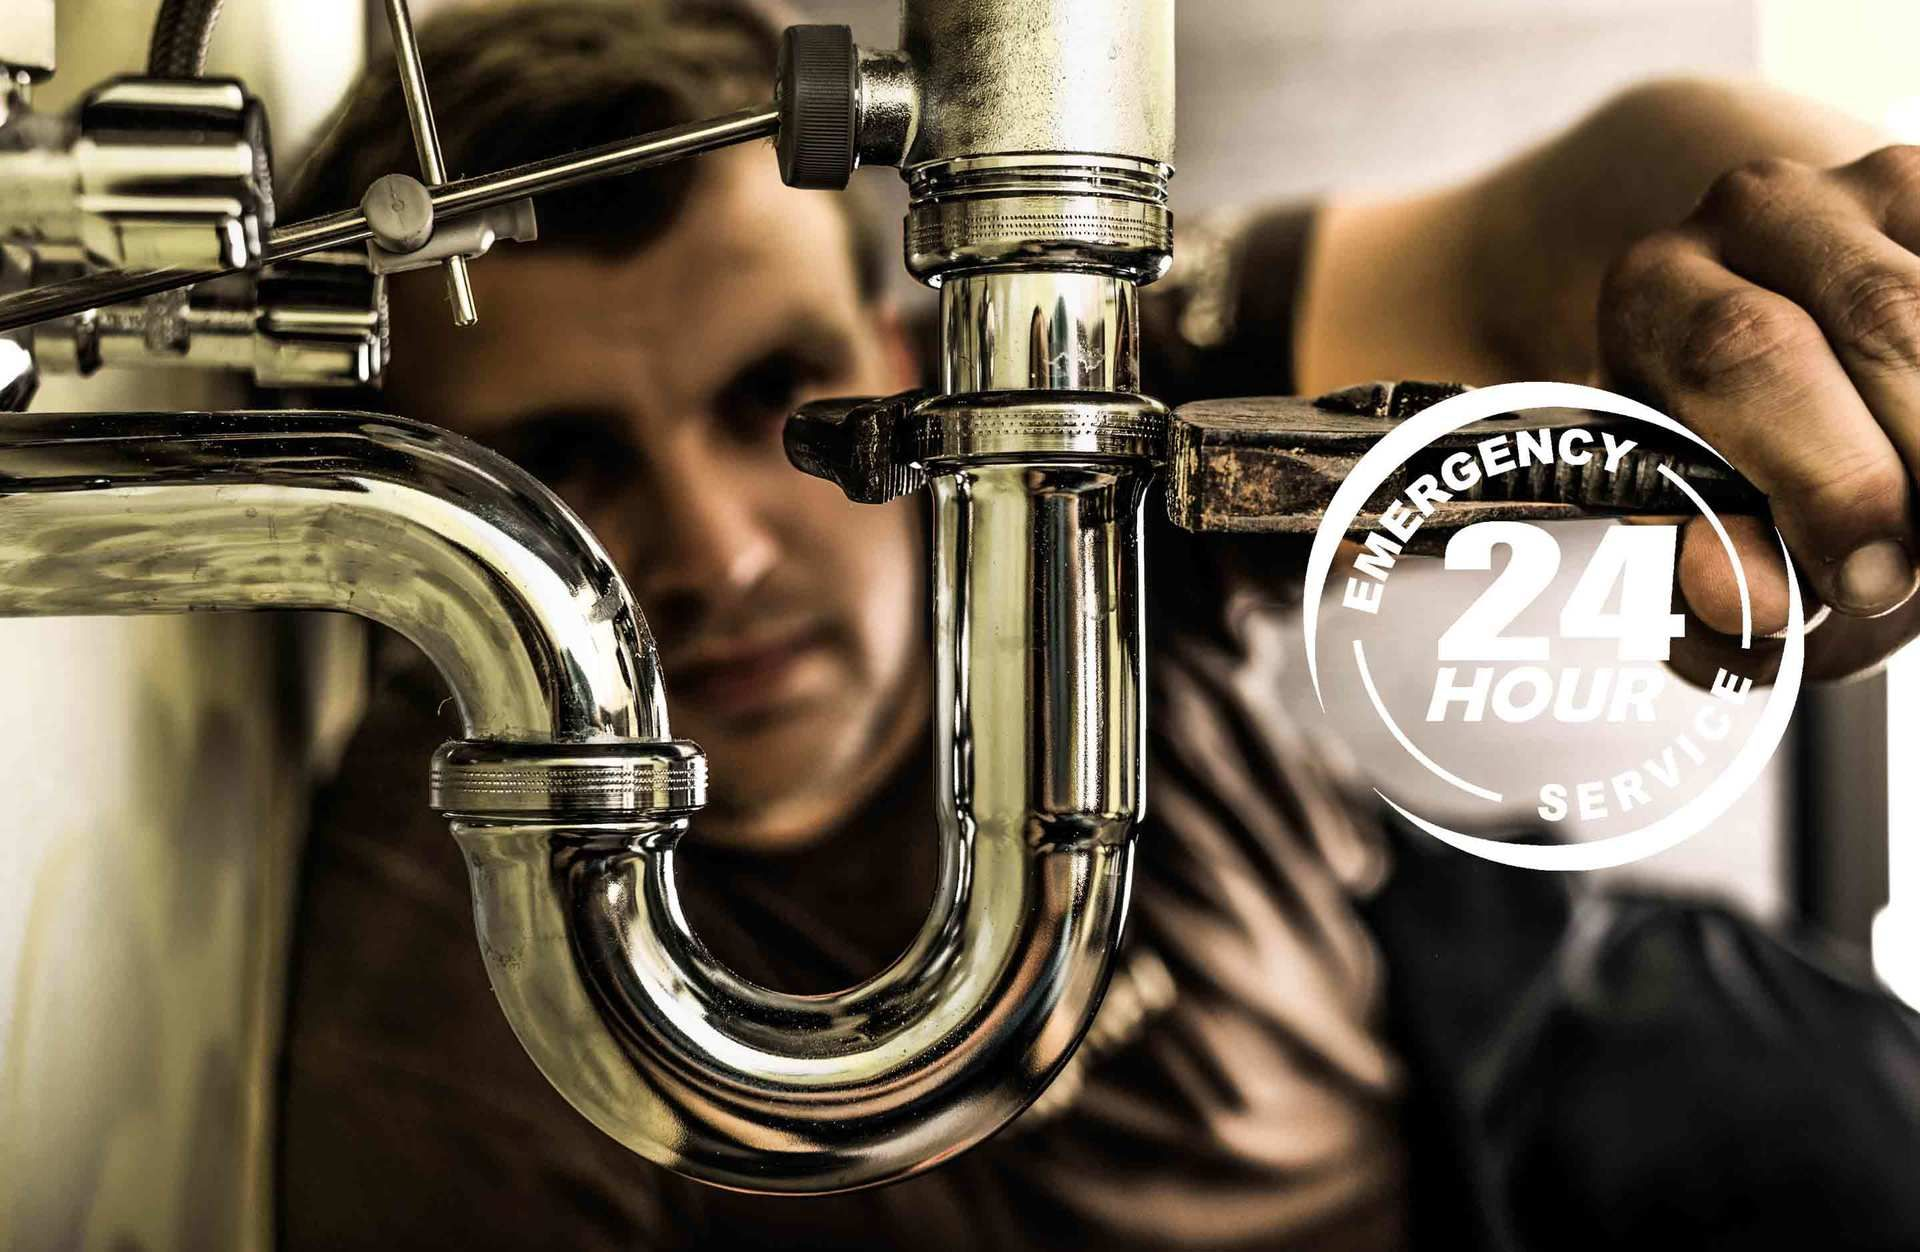 Are you looking for reliable Emergency plumbing service in